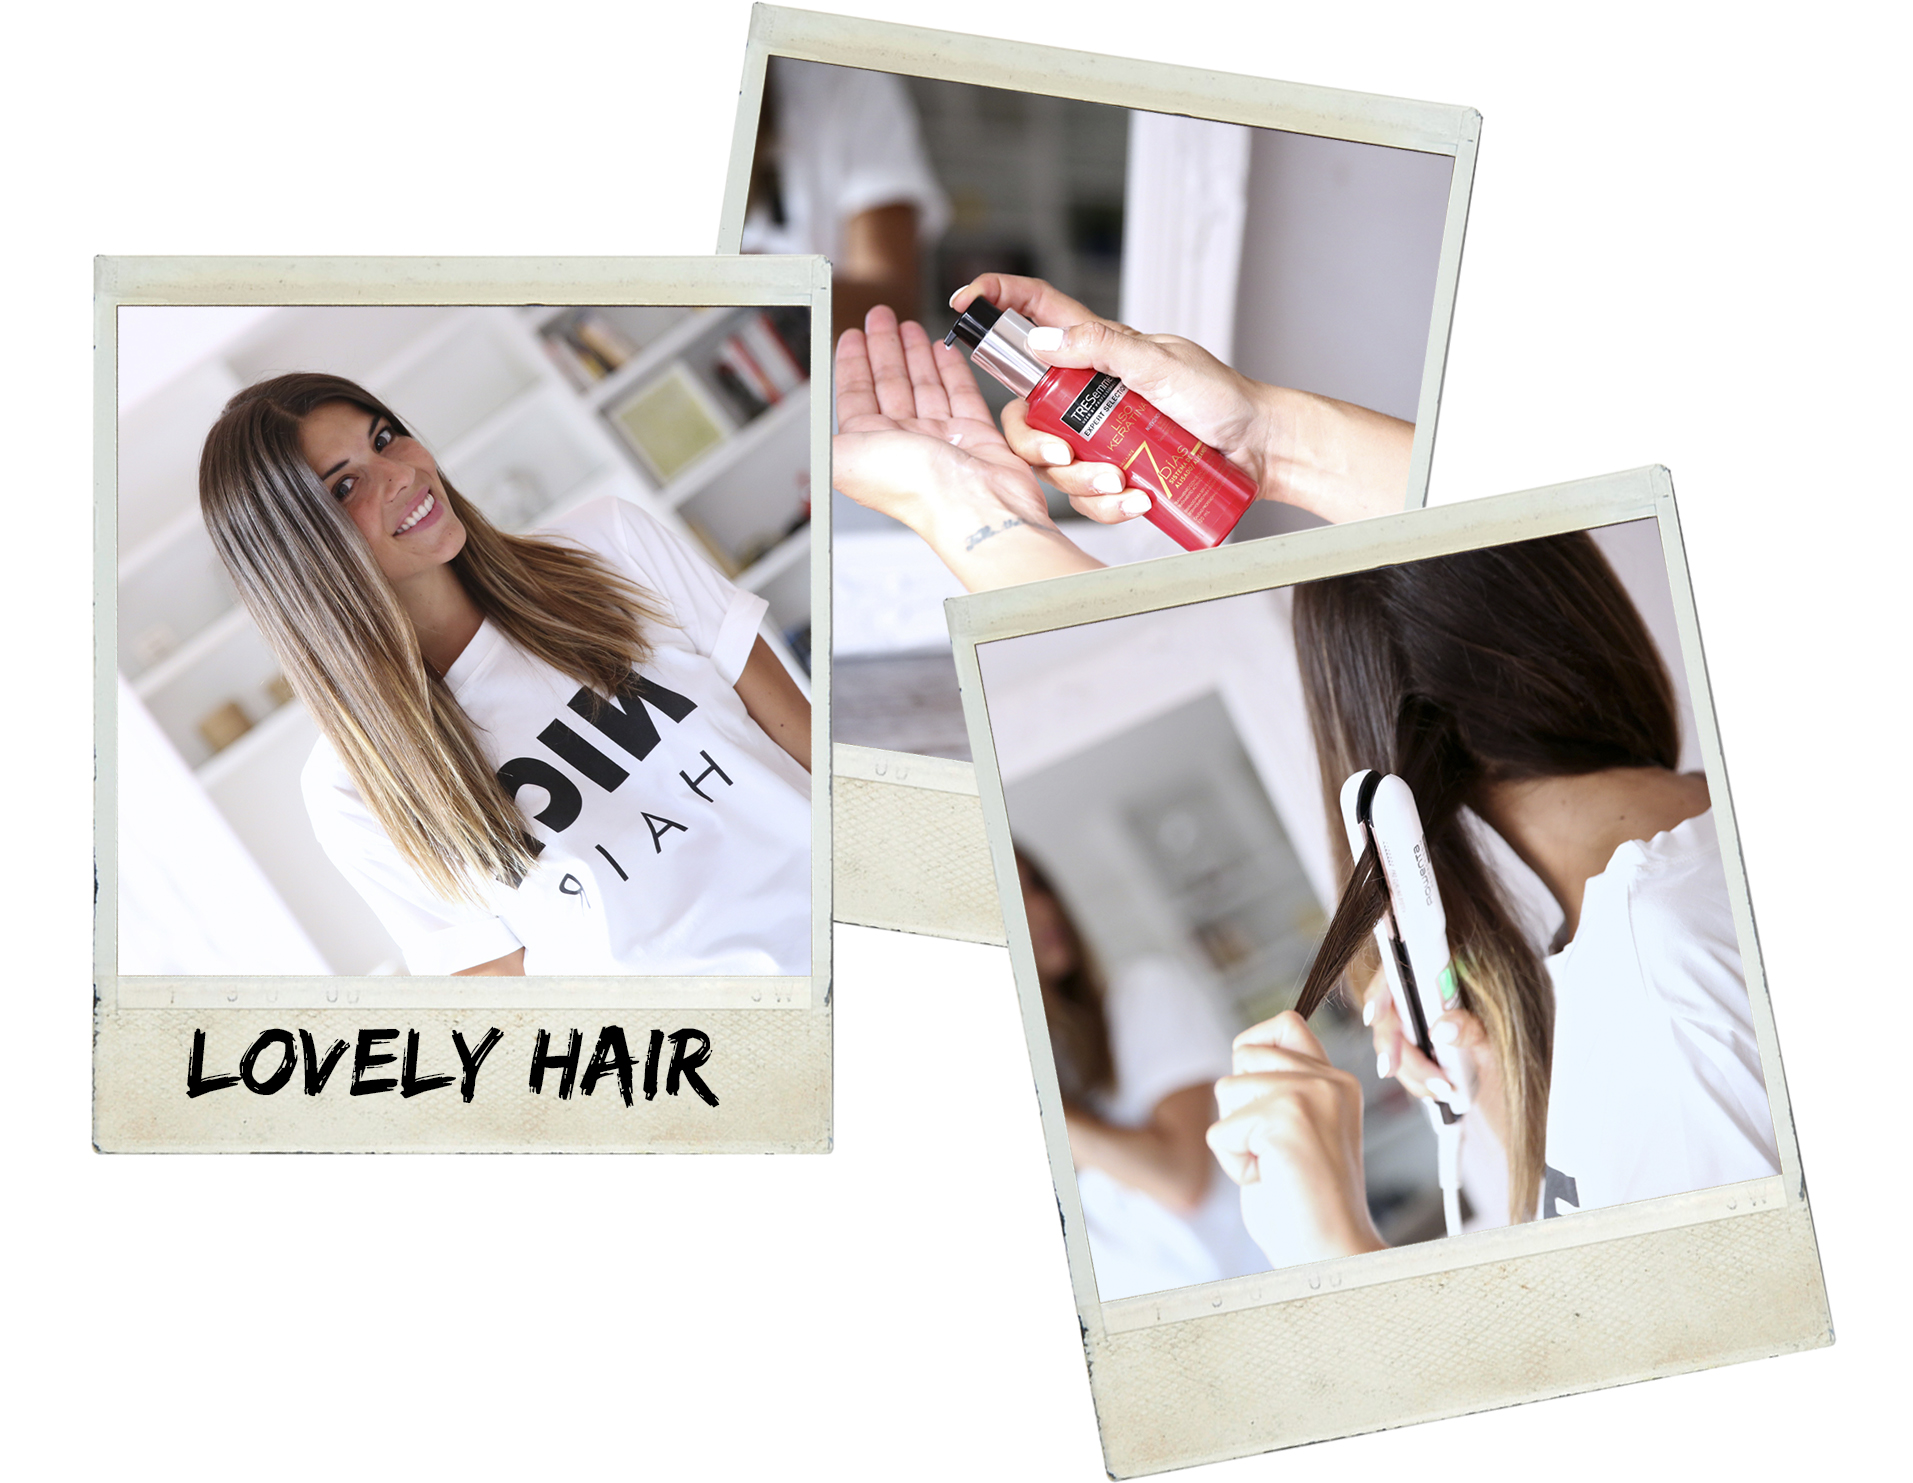 trendy_taste-look-outfit-blog-blogger-fashion_spain-moda_españa-belleza-beauty-cabello-pelo-cuidado-tutorial-tresemme-polaroid